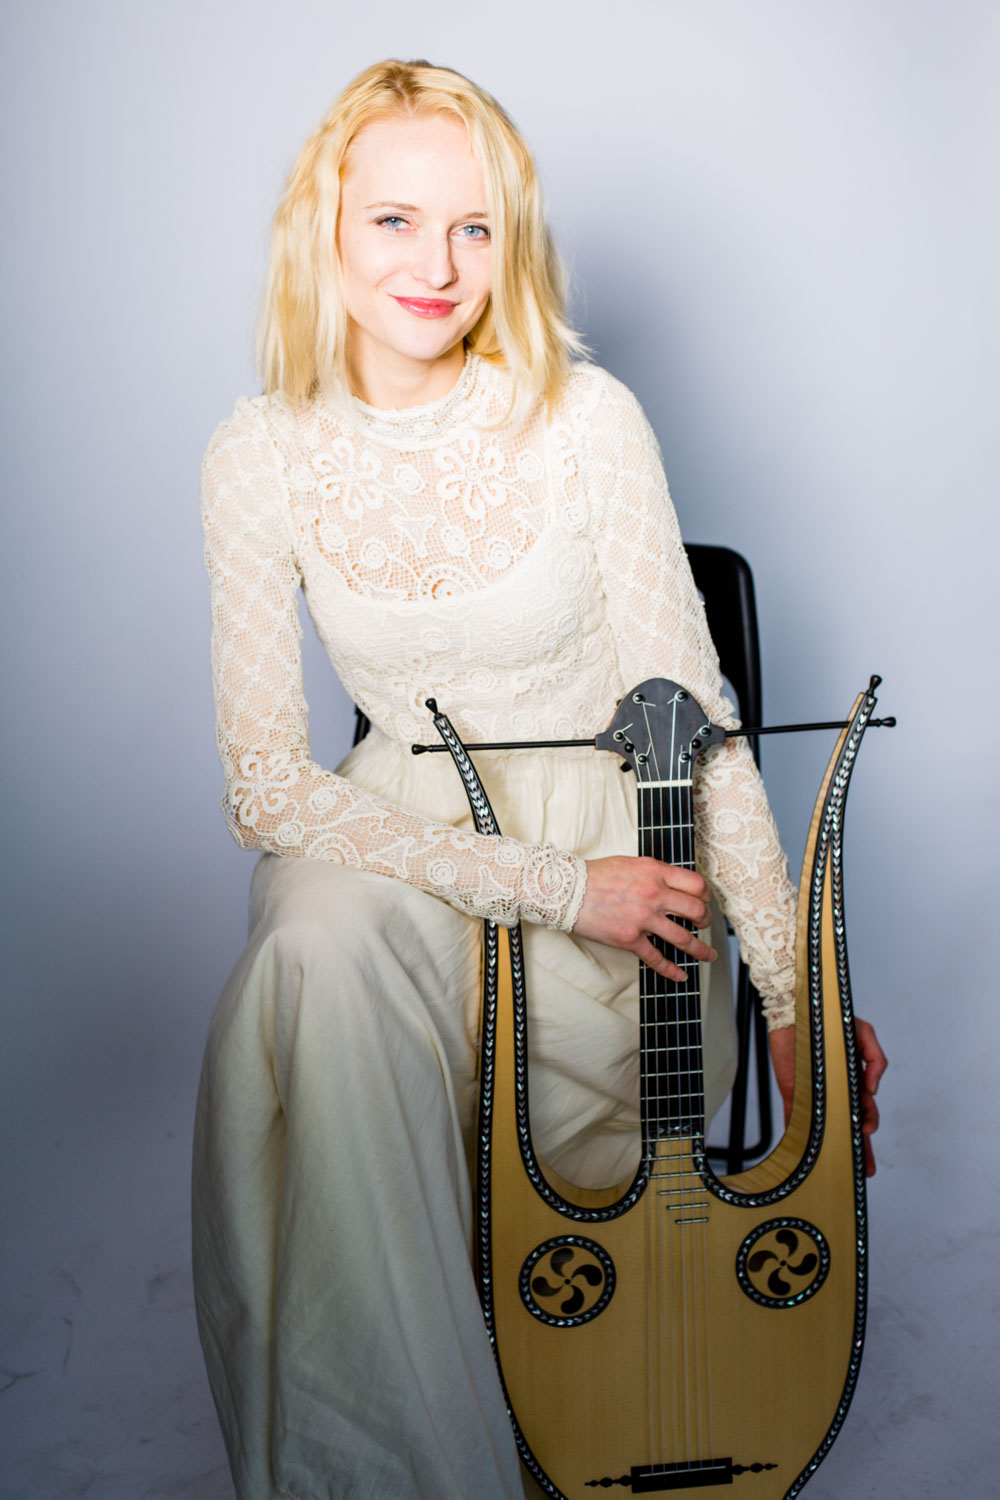 Ieva Baltmiskyte on Lyre guitar